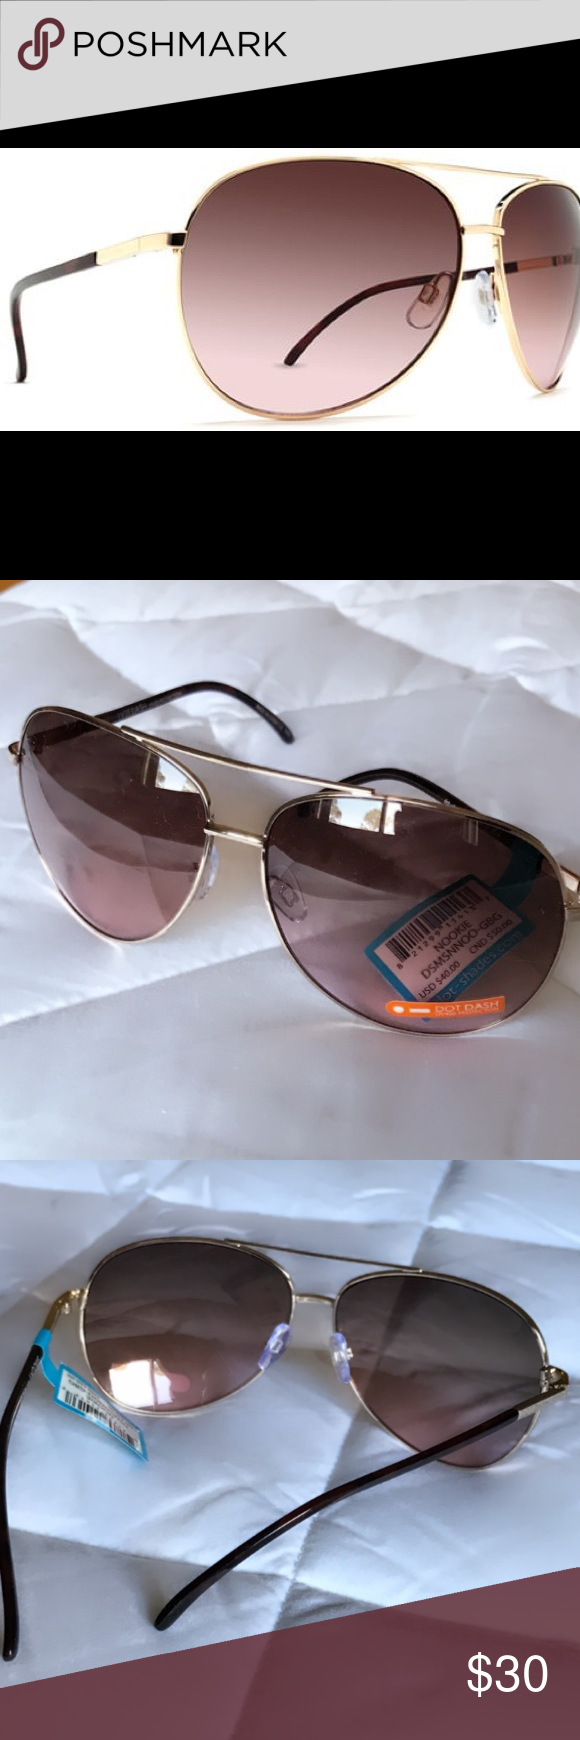 58bd6ba9f6 Dot Dash  Nookie  Sunglasses☀️NWT☀ Sexy